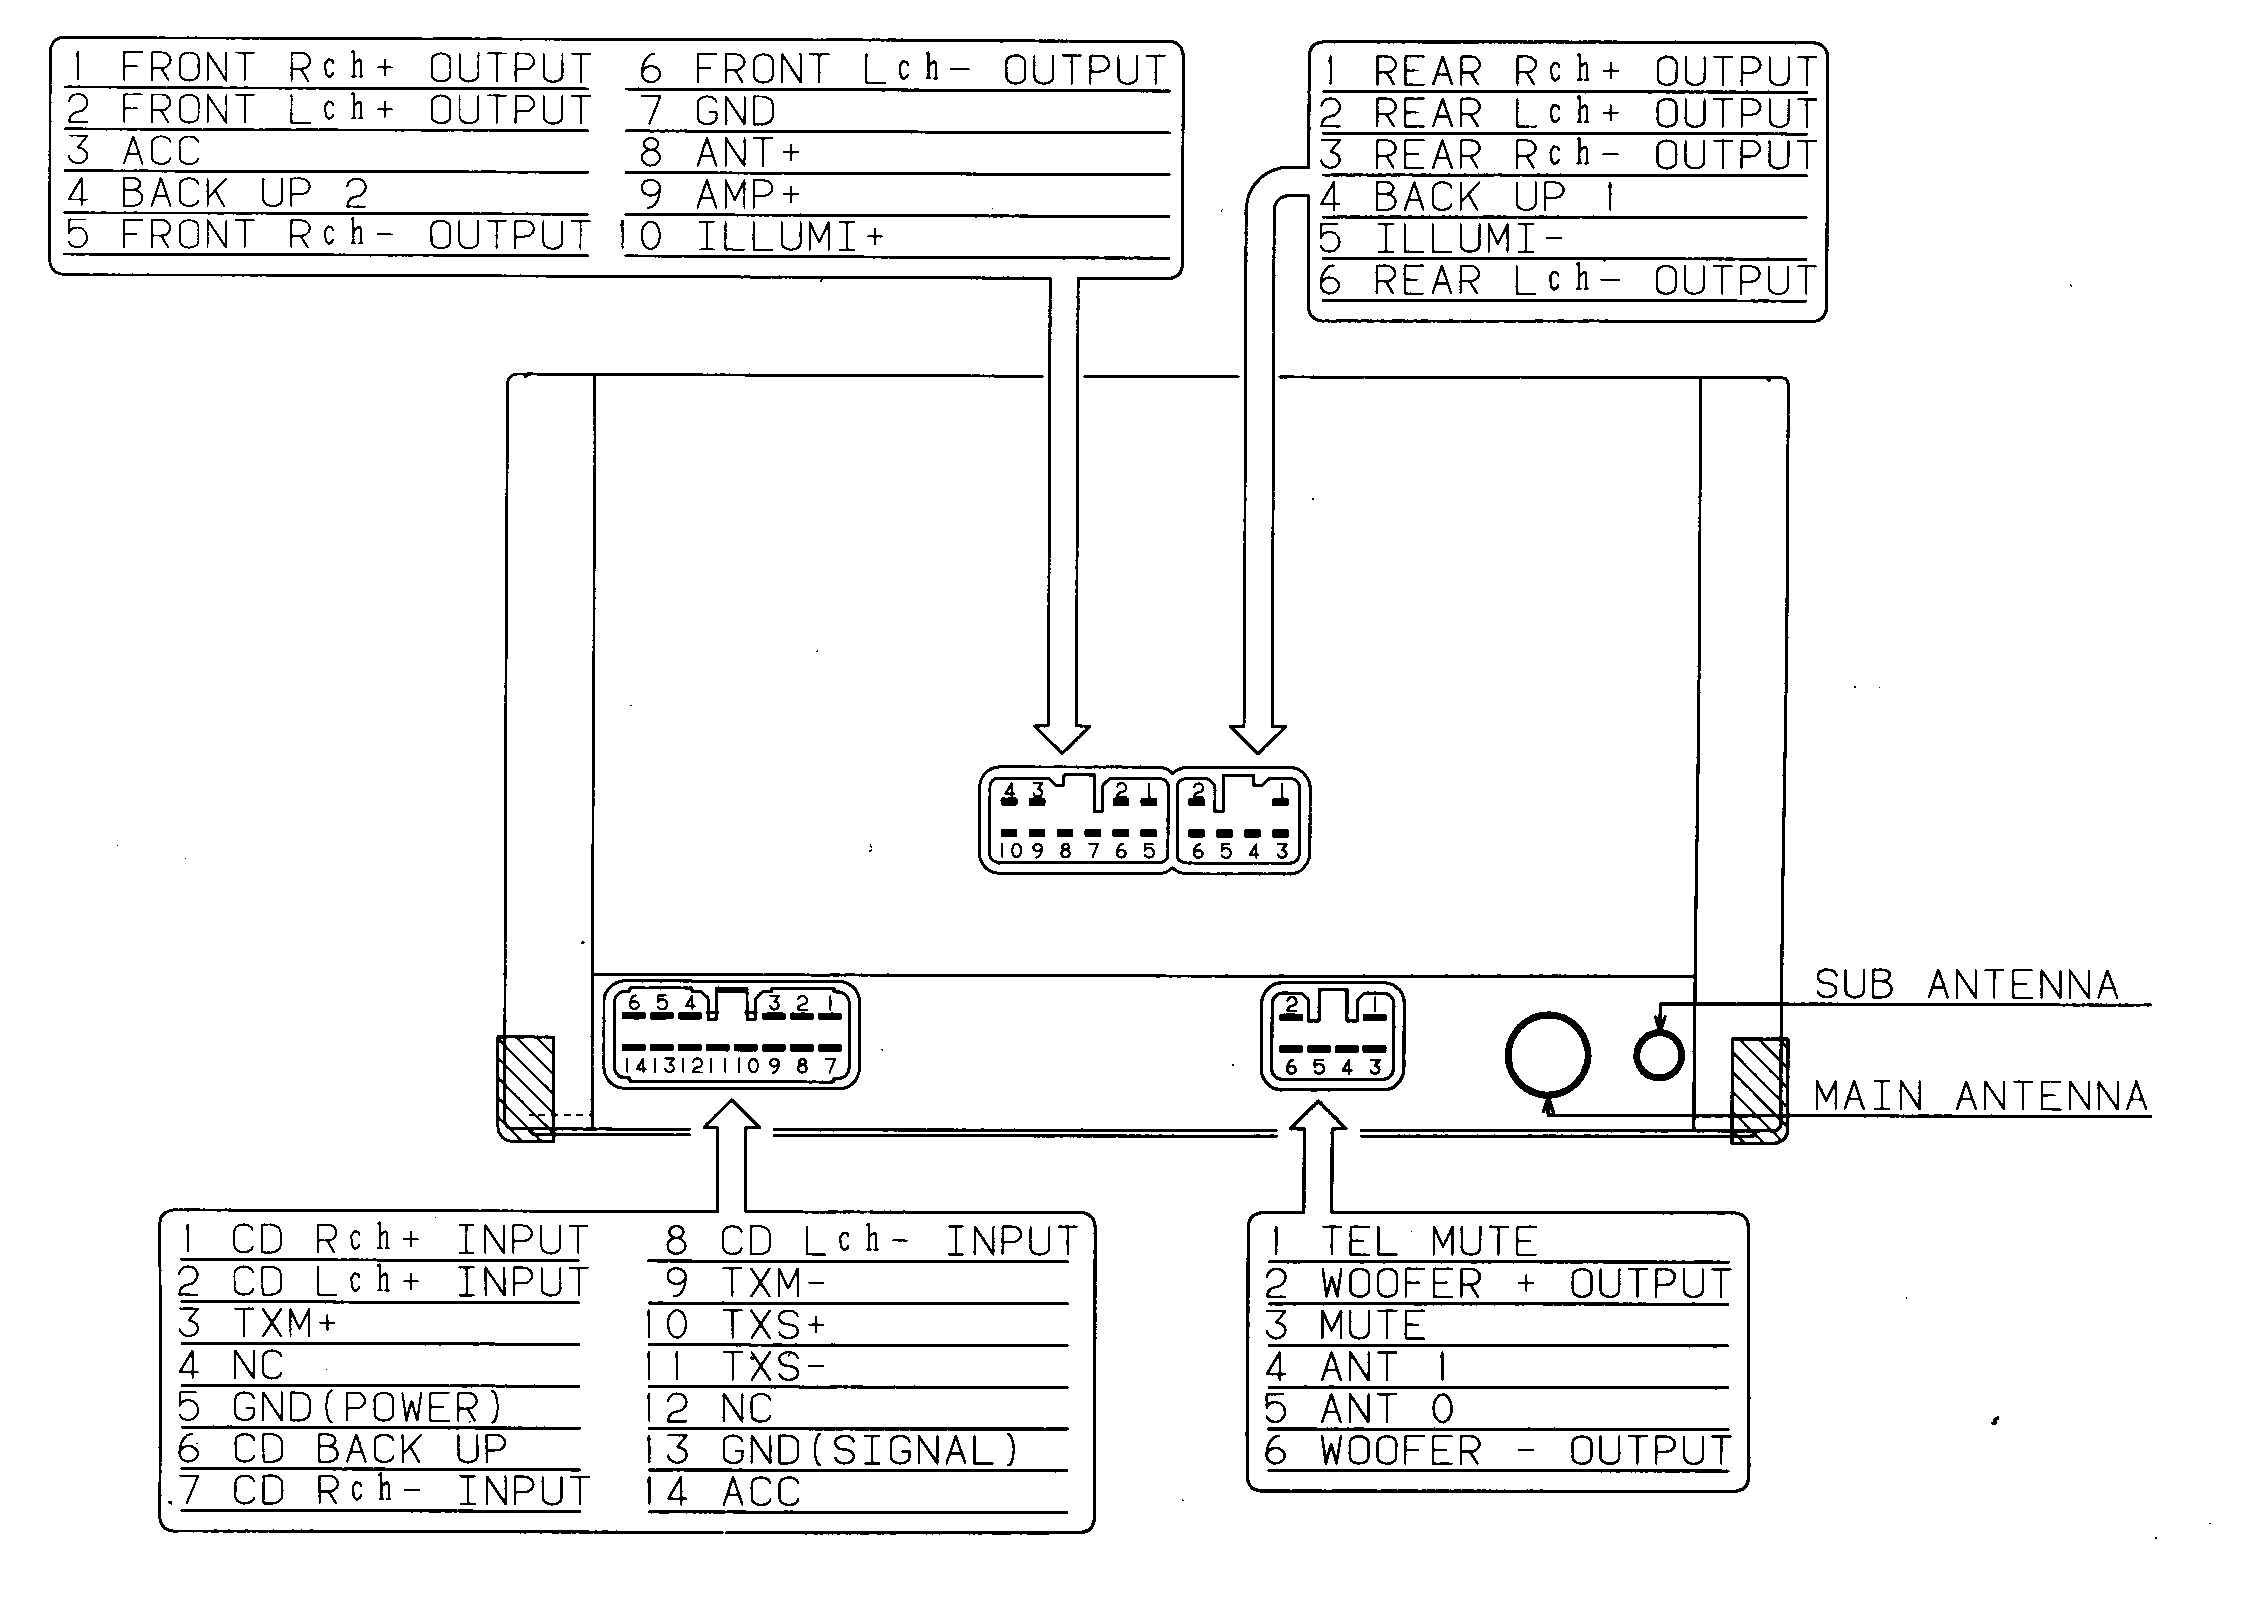 Lexus car stereo wiring diagram harness pinout connector wire daihatsu ecu wiring diagram peterbilt trucks wiring diagram Yanmar YM2500 Manual at reclaimingppi.co